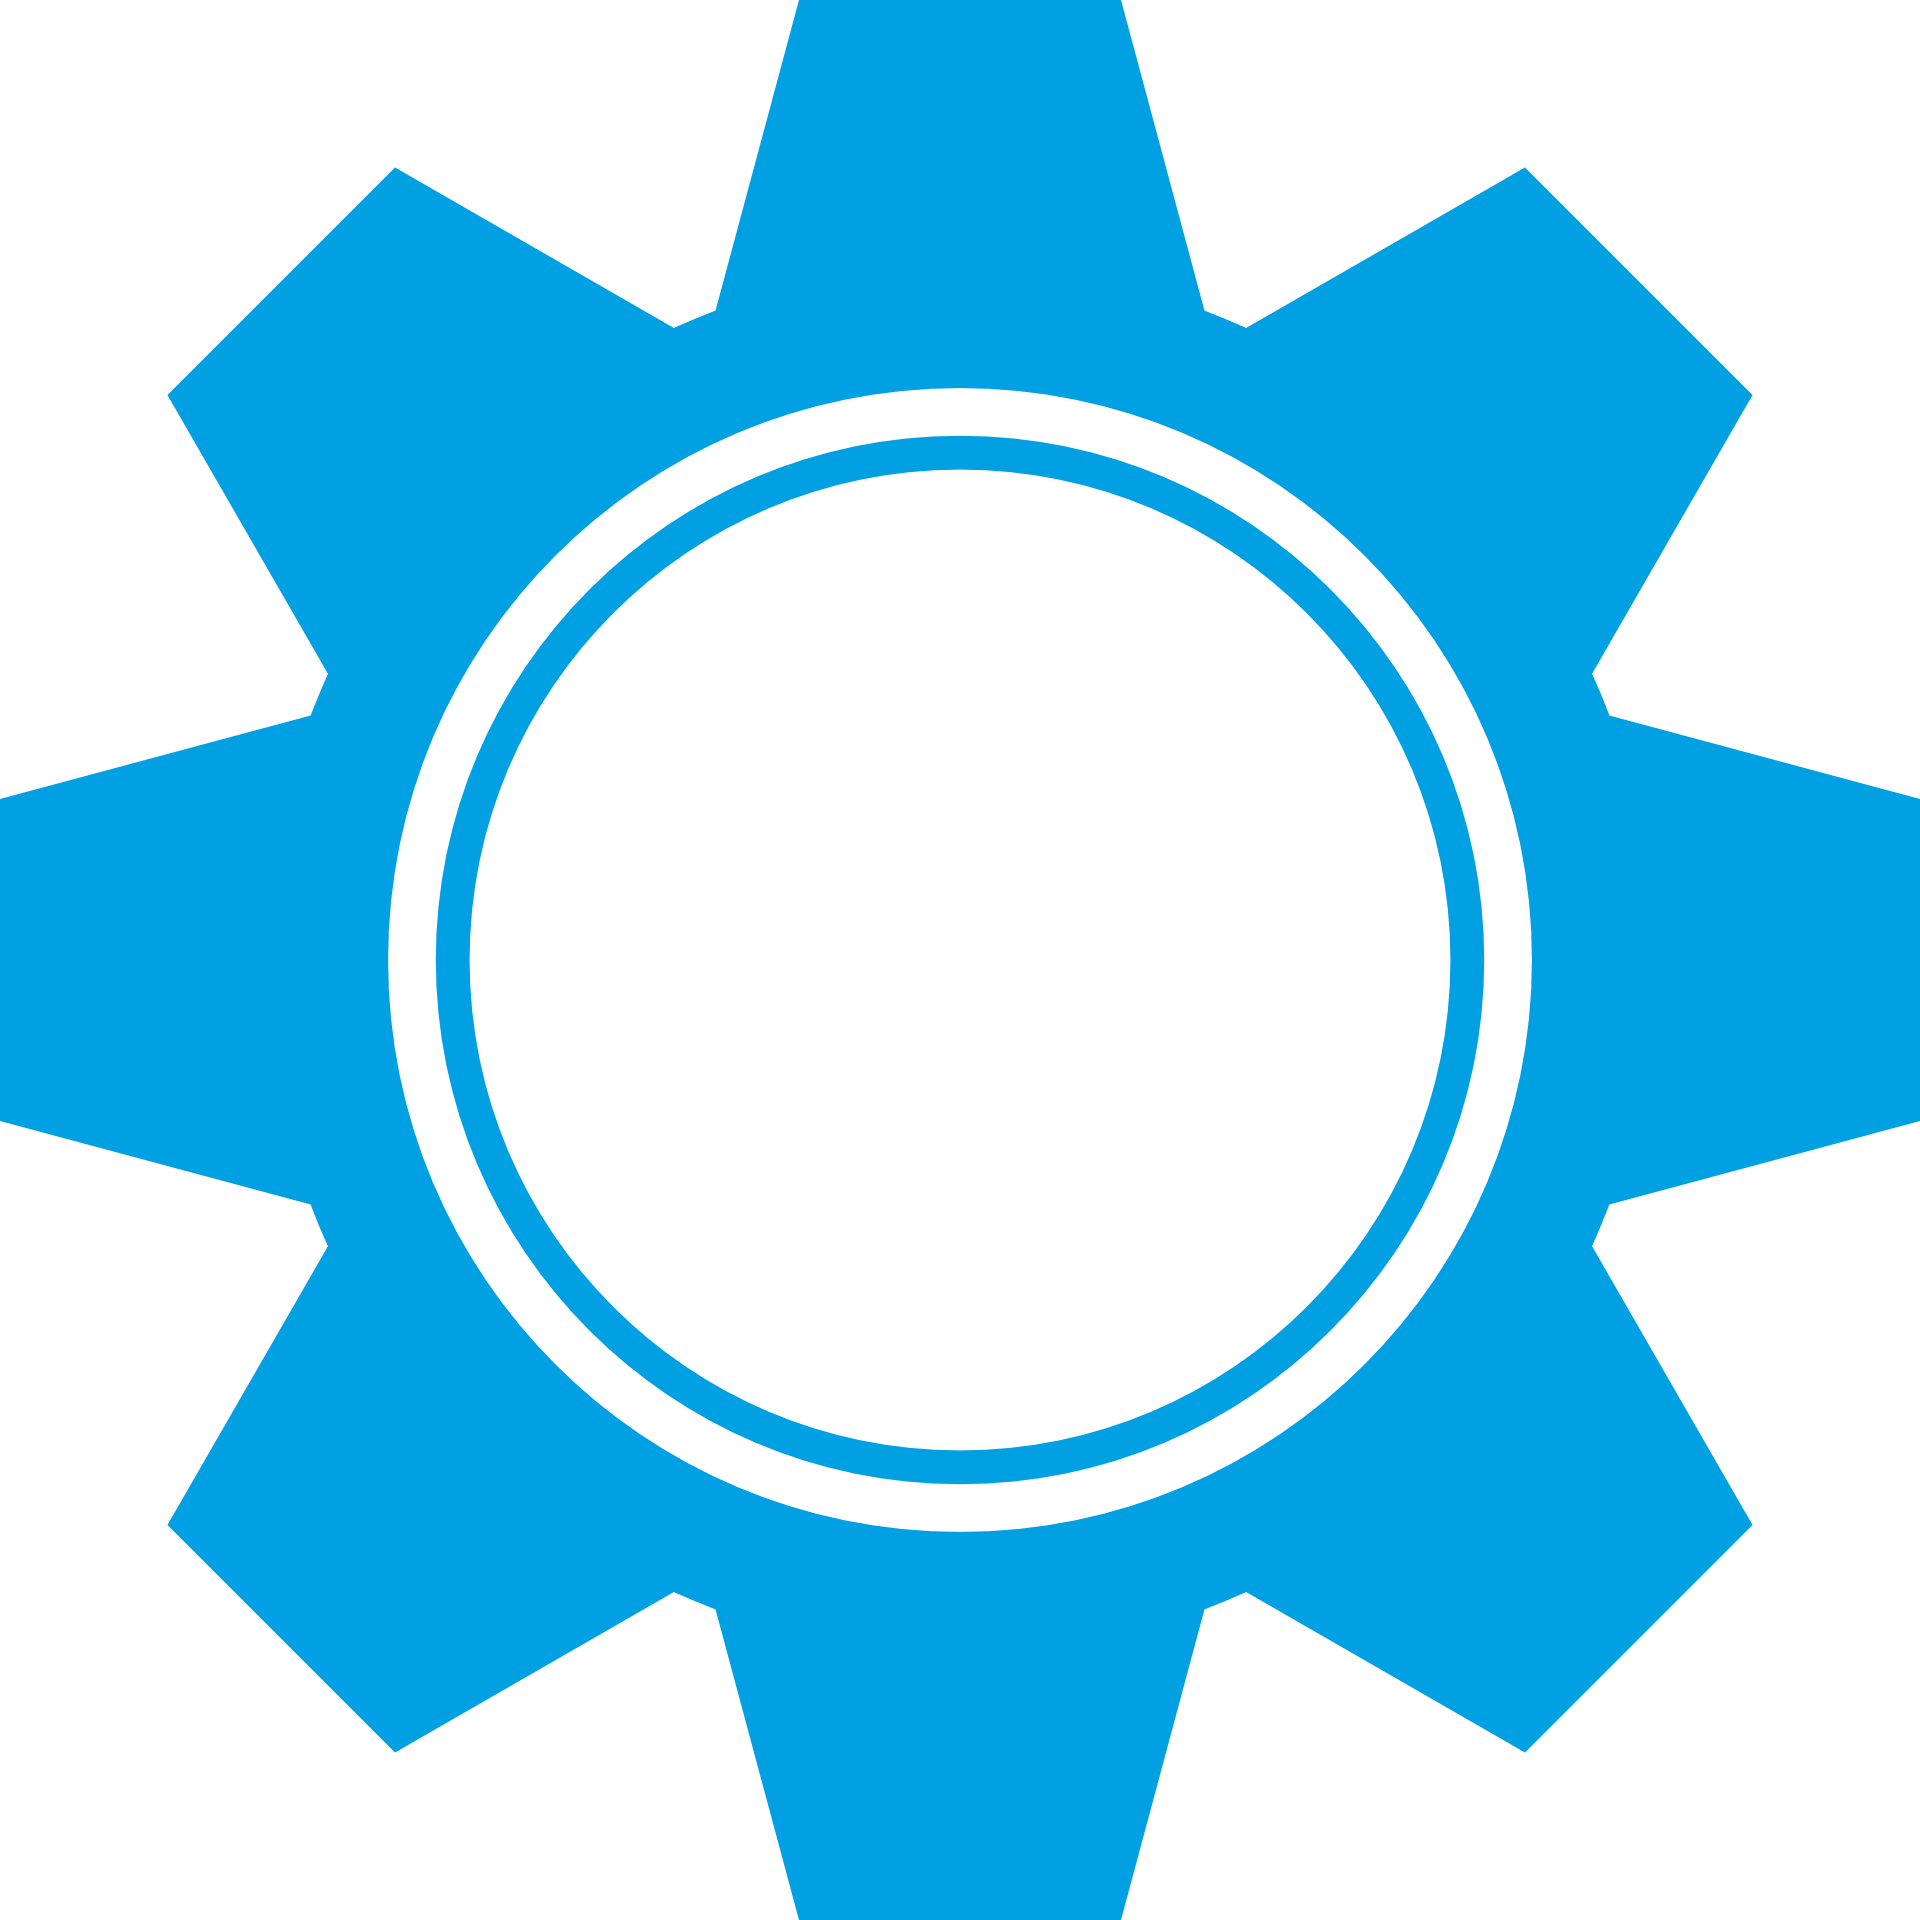 Drawing of blue free. Industry clipart gear wheel